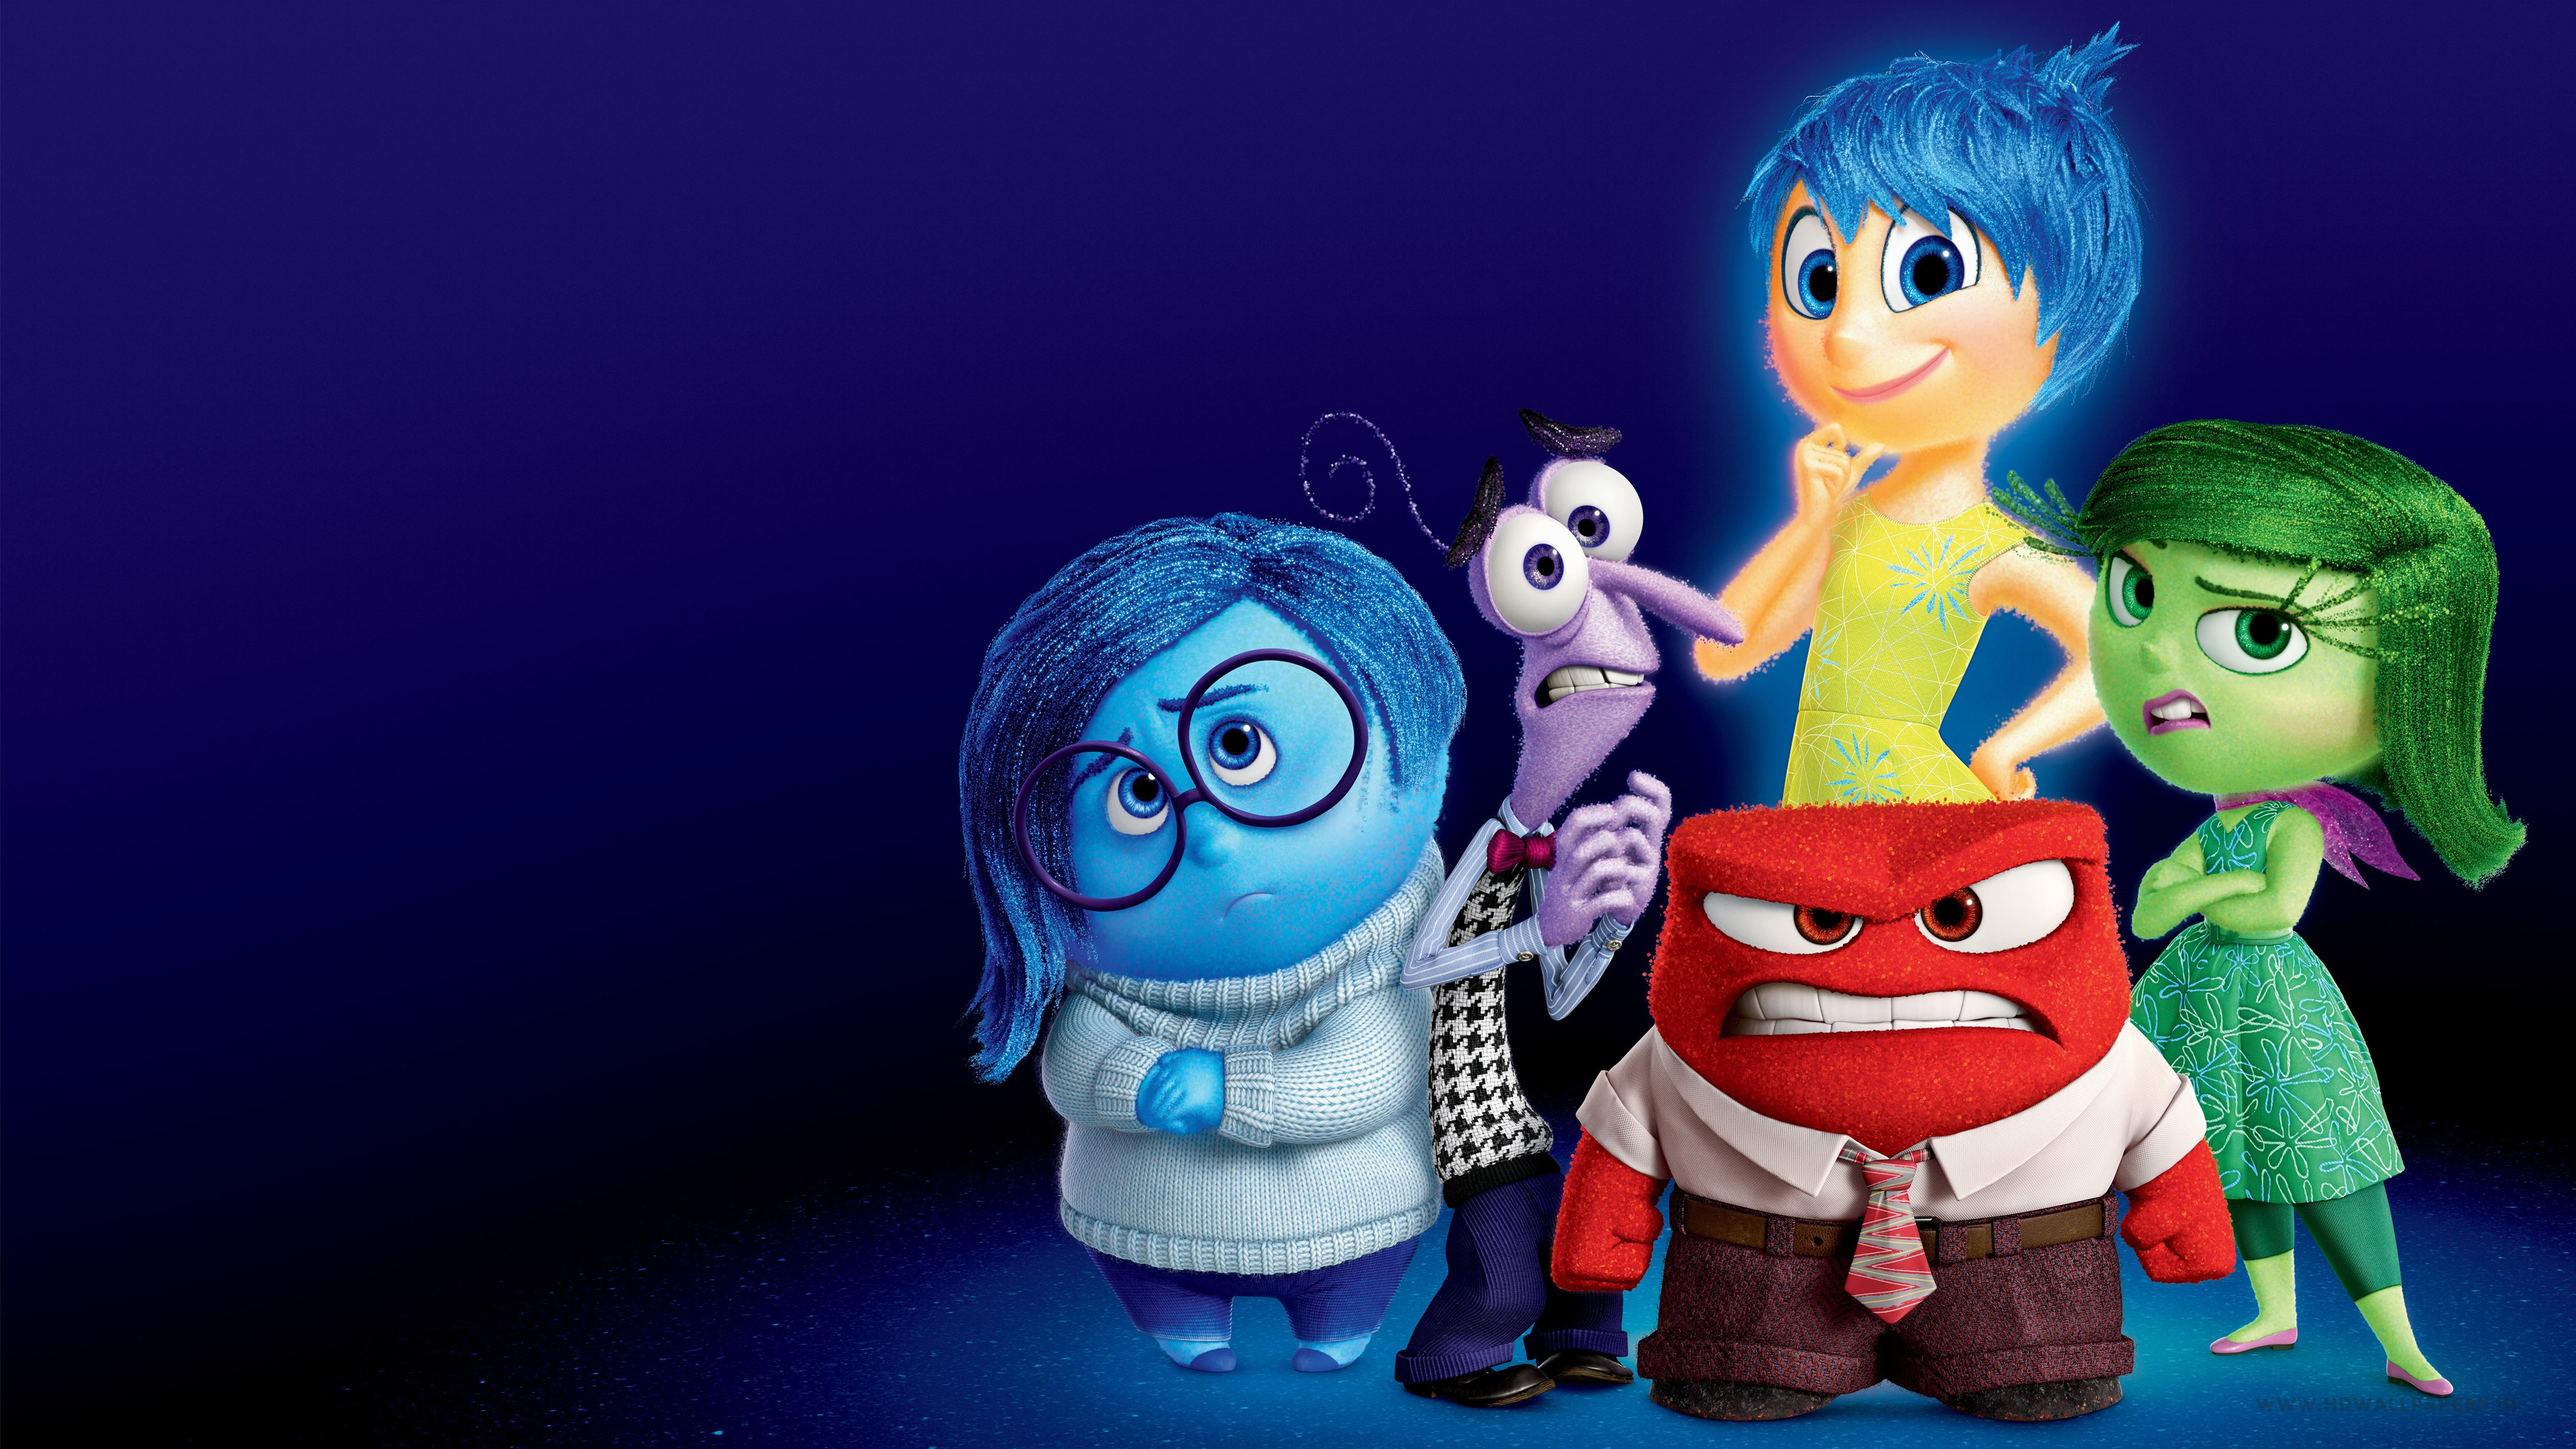 Inside Out 4k Ultra HD Wallpaper Background Image 3840x2160 3840x2160